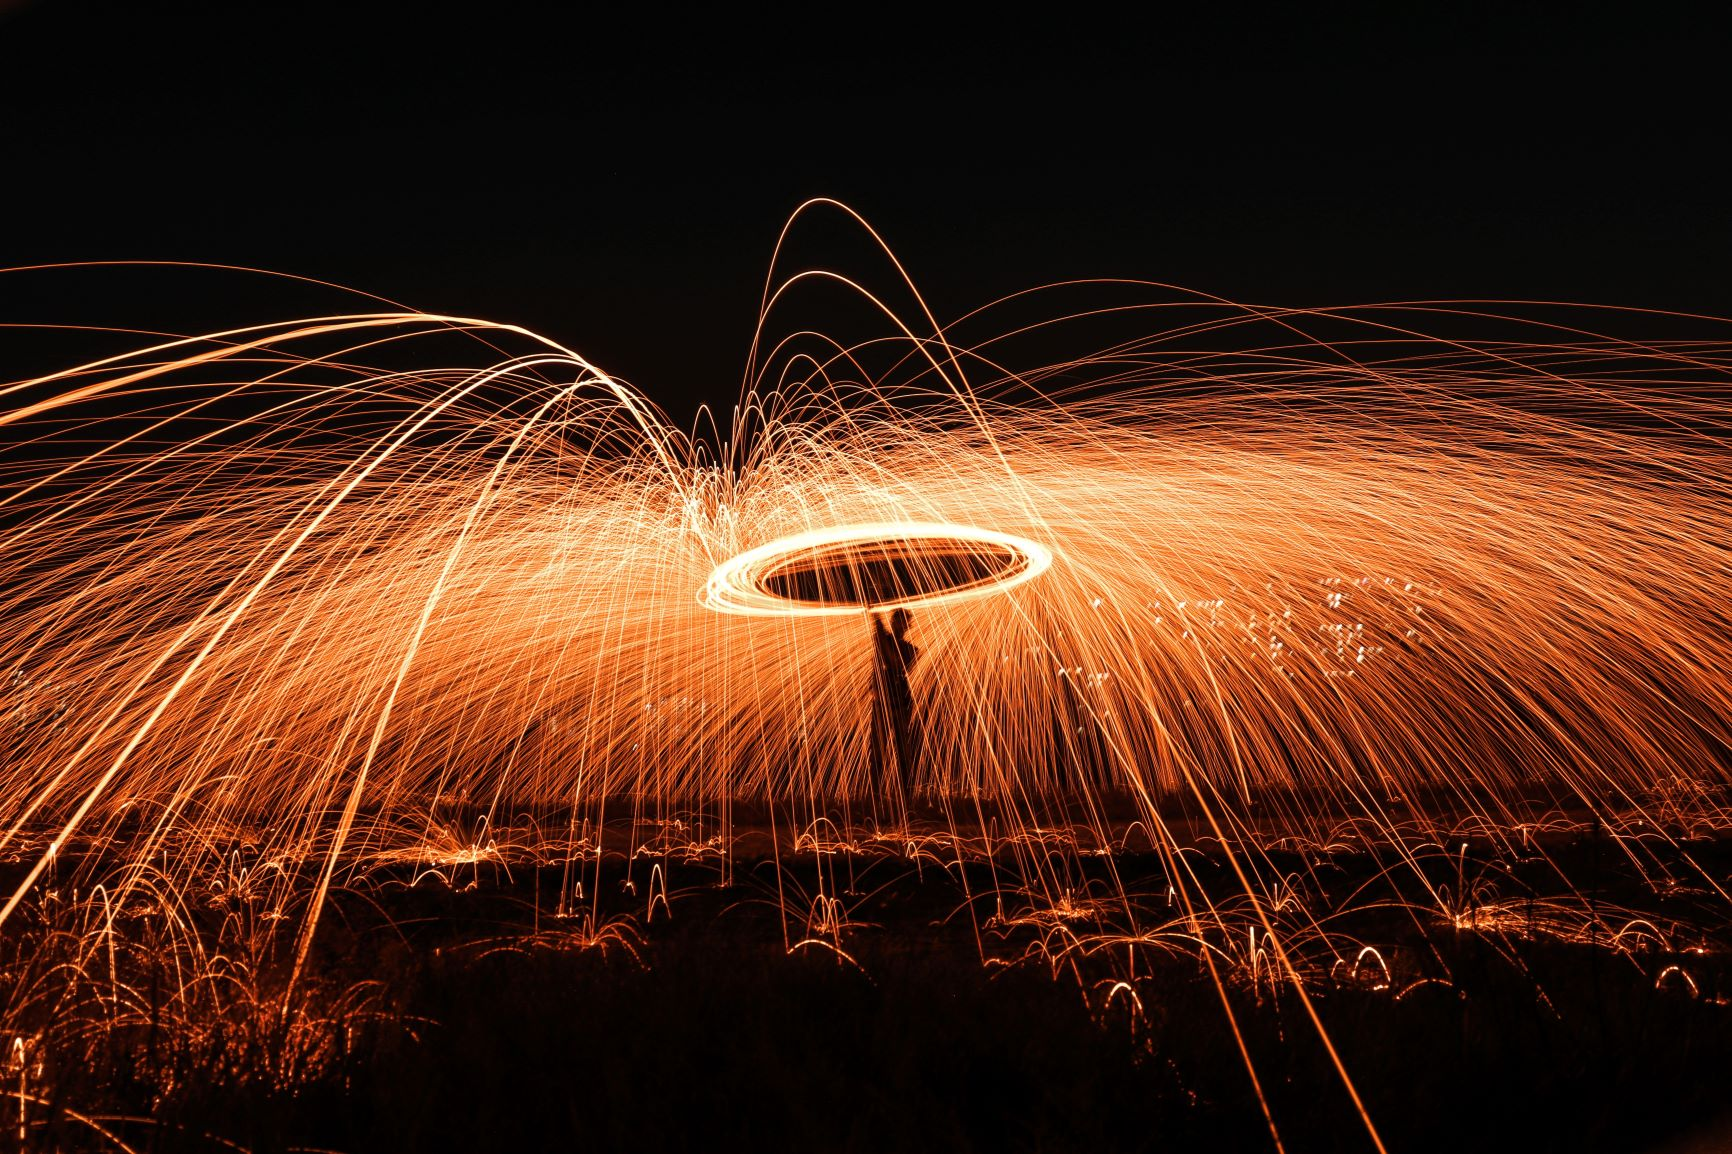 A long exposure photograph of a person swinging a large sparkler over their head